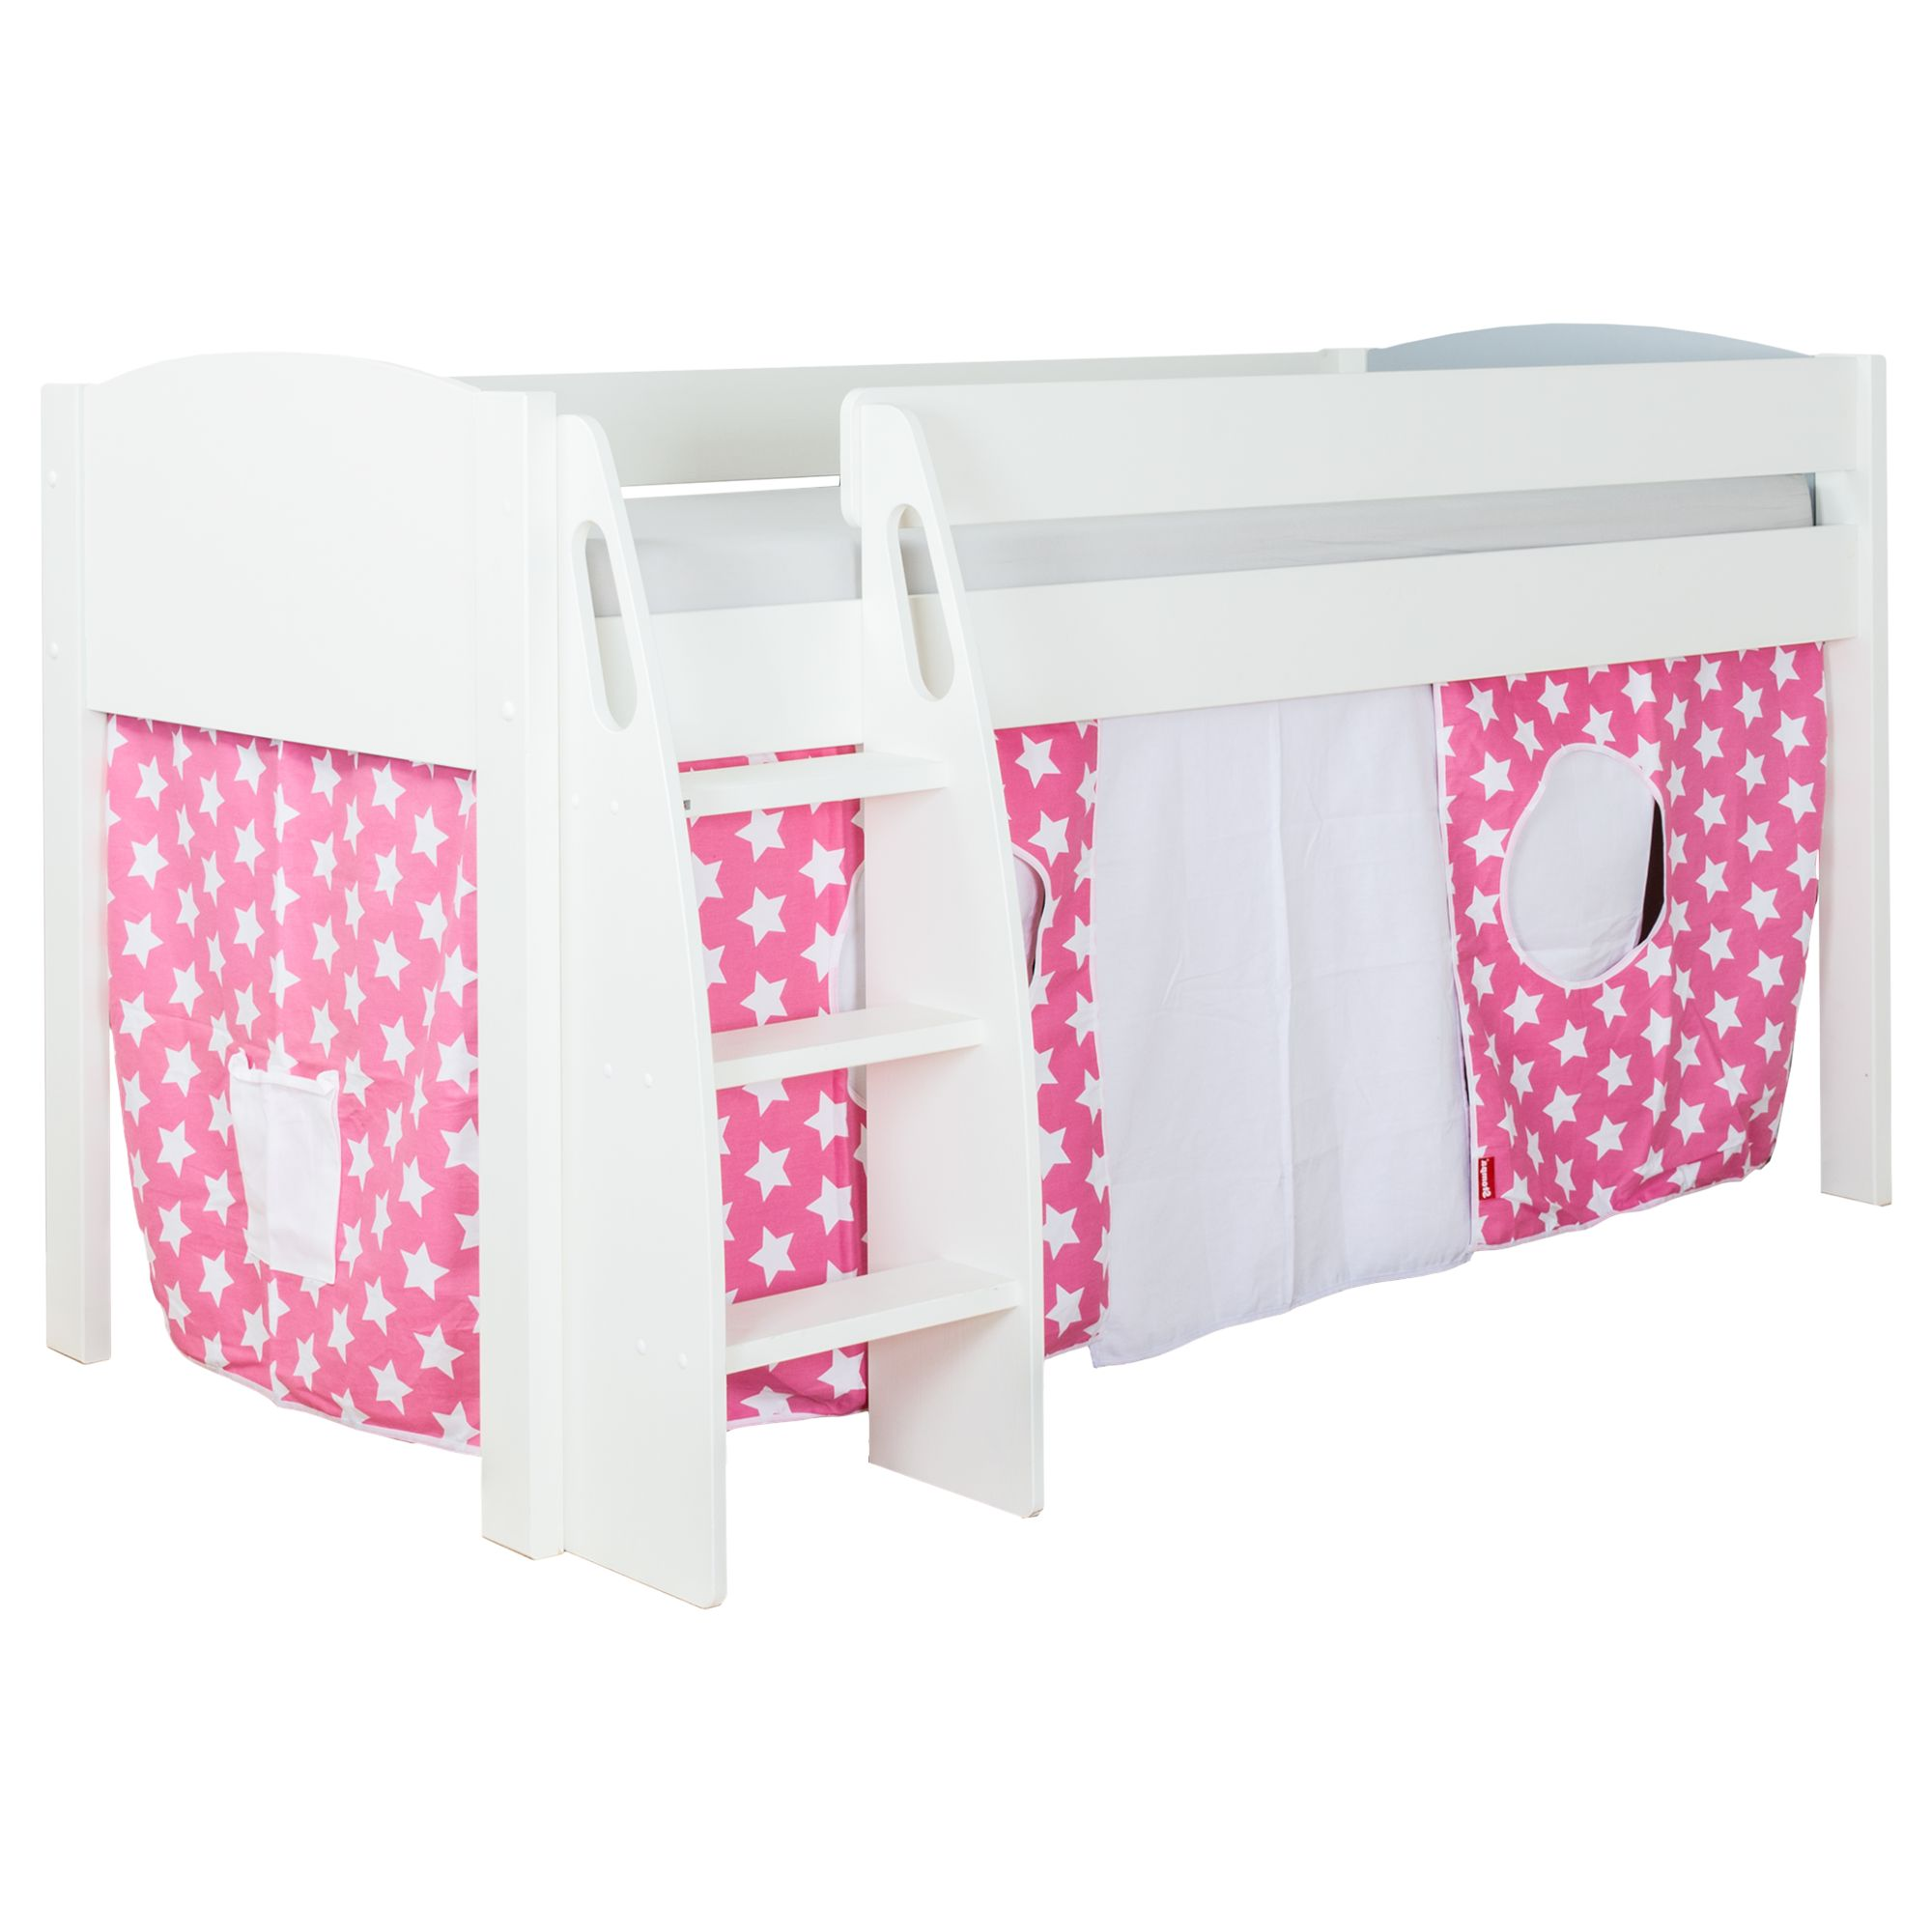 Stompa Stompa Uno S Plus Mid-Sleeper Bed with White Headboard and Star Print Tent